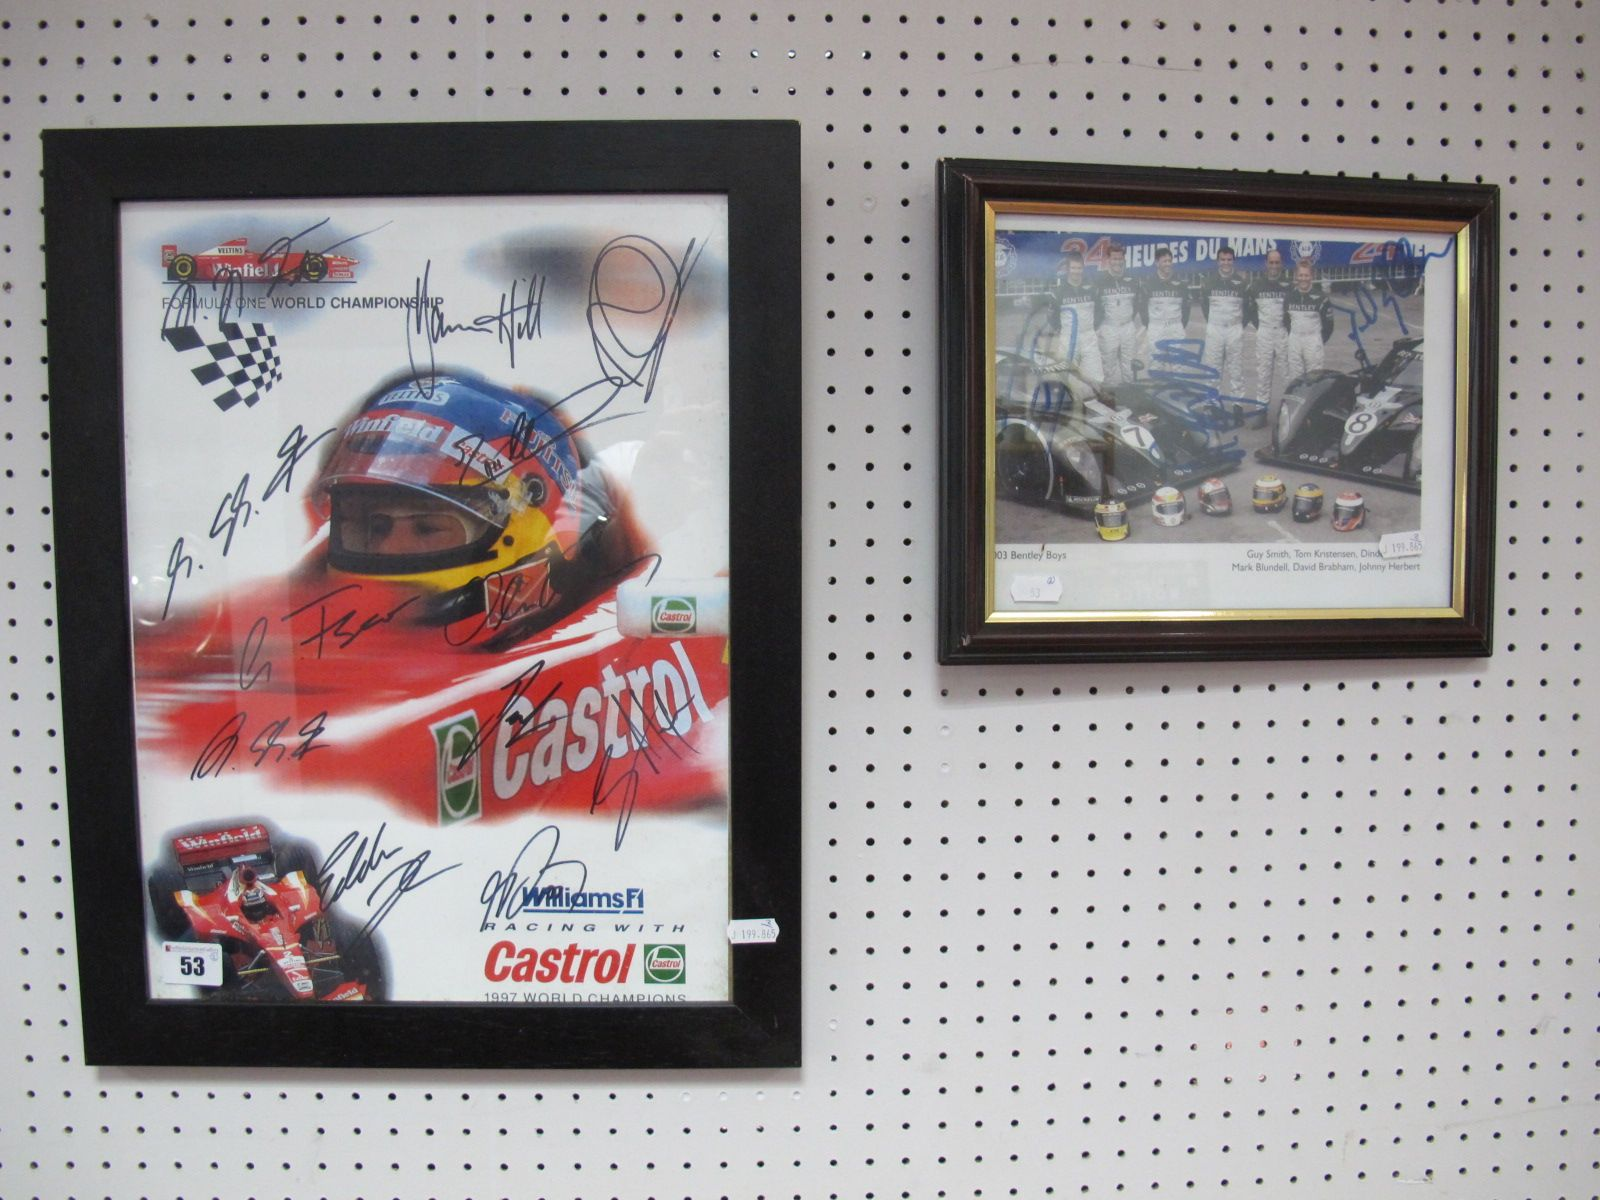 Lot 53 - 1990's Williams F1 Signed Print, plus a 2003 Bentley boys signed print, both framed.